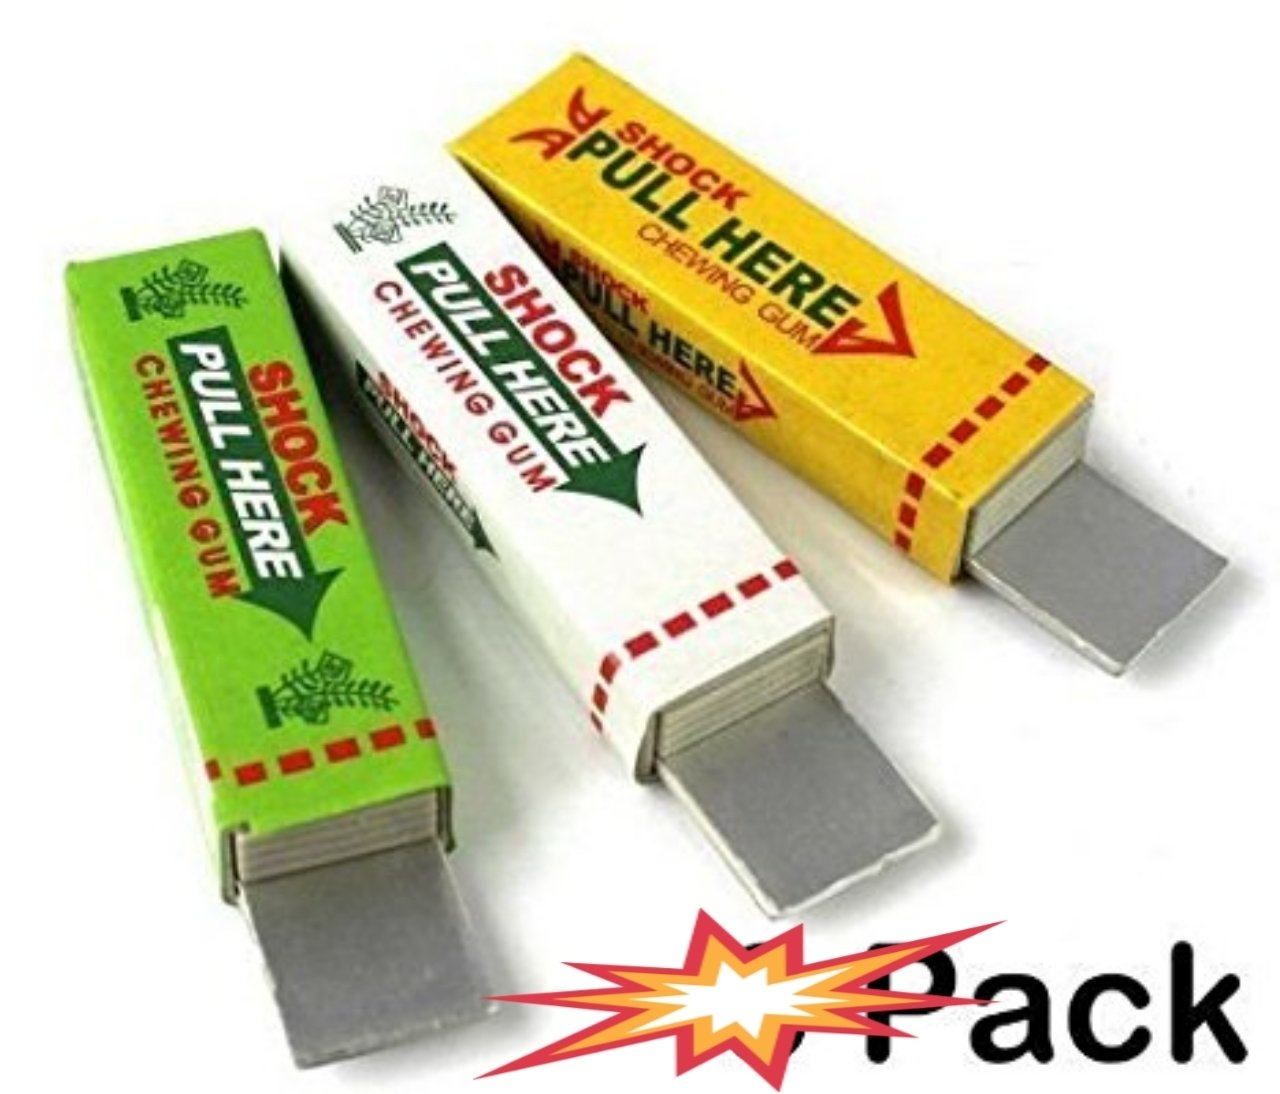 Chewing Gum Electrifiant pour Farceur & Blagueur - Electric Shock Chewing Gum